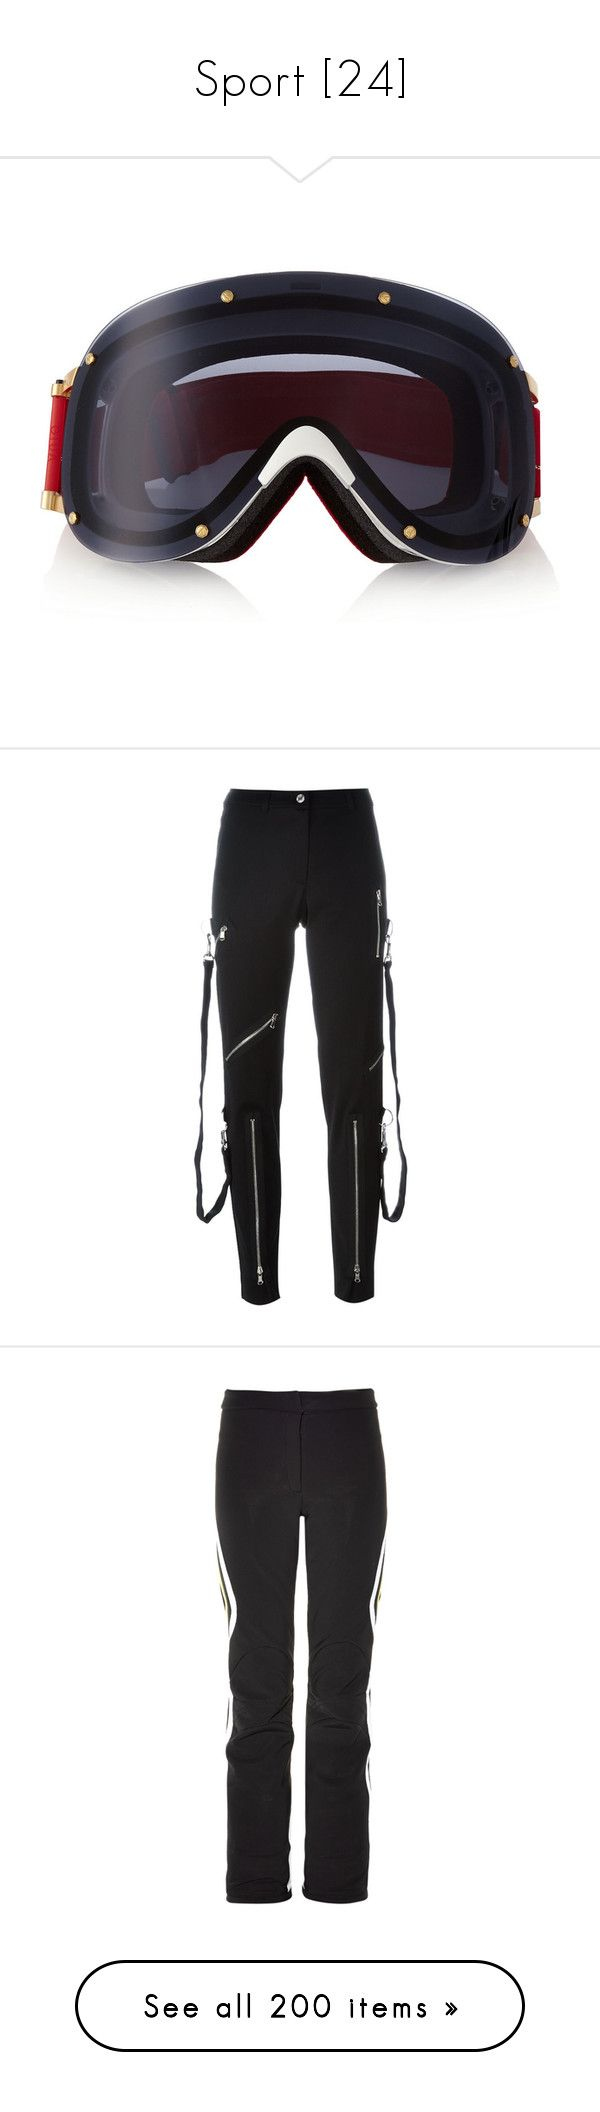 """""""Sport [24]"""" by gdavilla ❤ liked on Polyvore featuring sport, pants, bottoms, jeans, pants and leggings, black, cropped pants, high-waist trousers, straight leg pants and cropped trousers"""